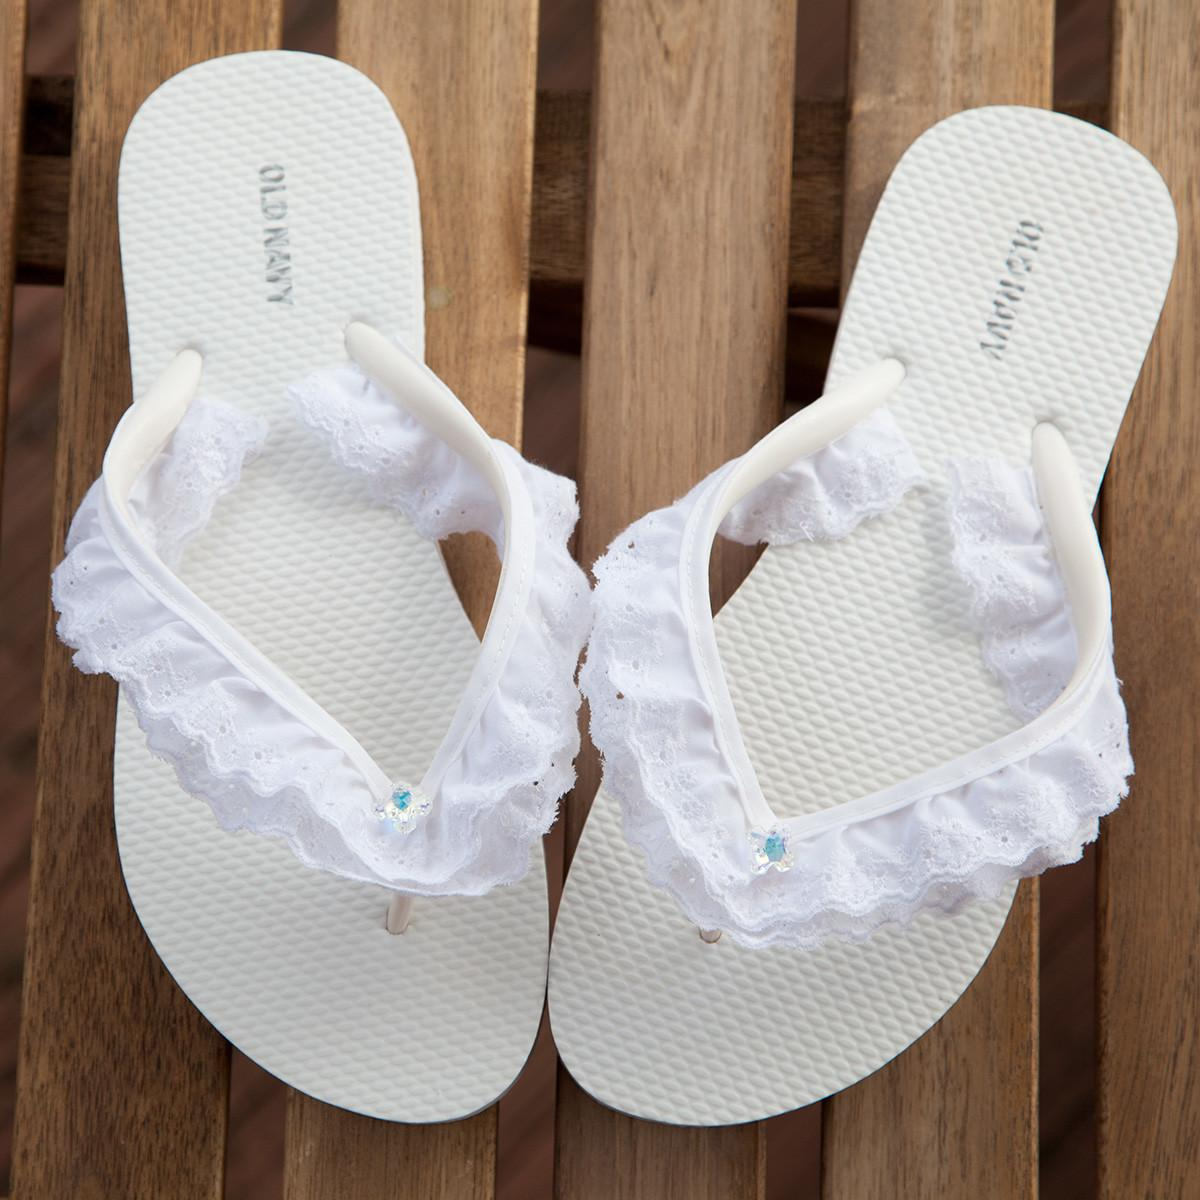 Eyelet lace flip flop DIY Picturesque Flip Flops Ideas That Are Great For Indoor Or Beach Day